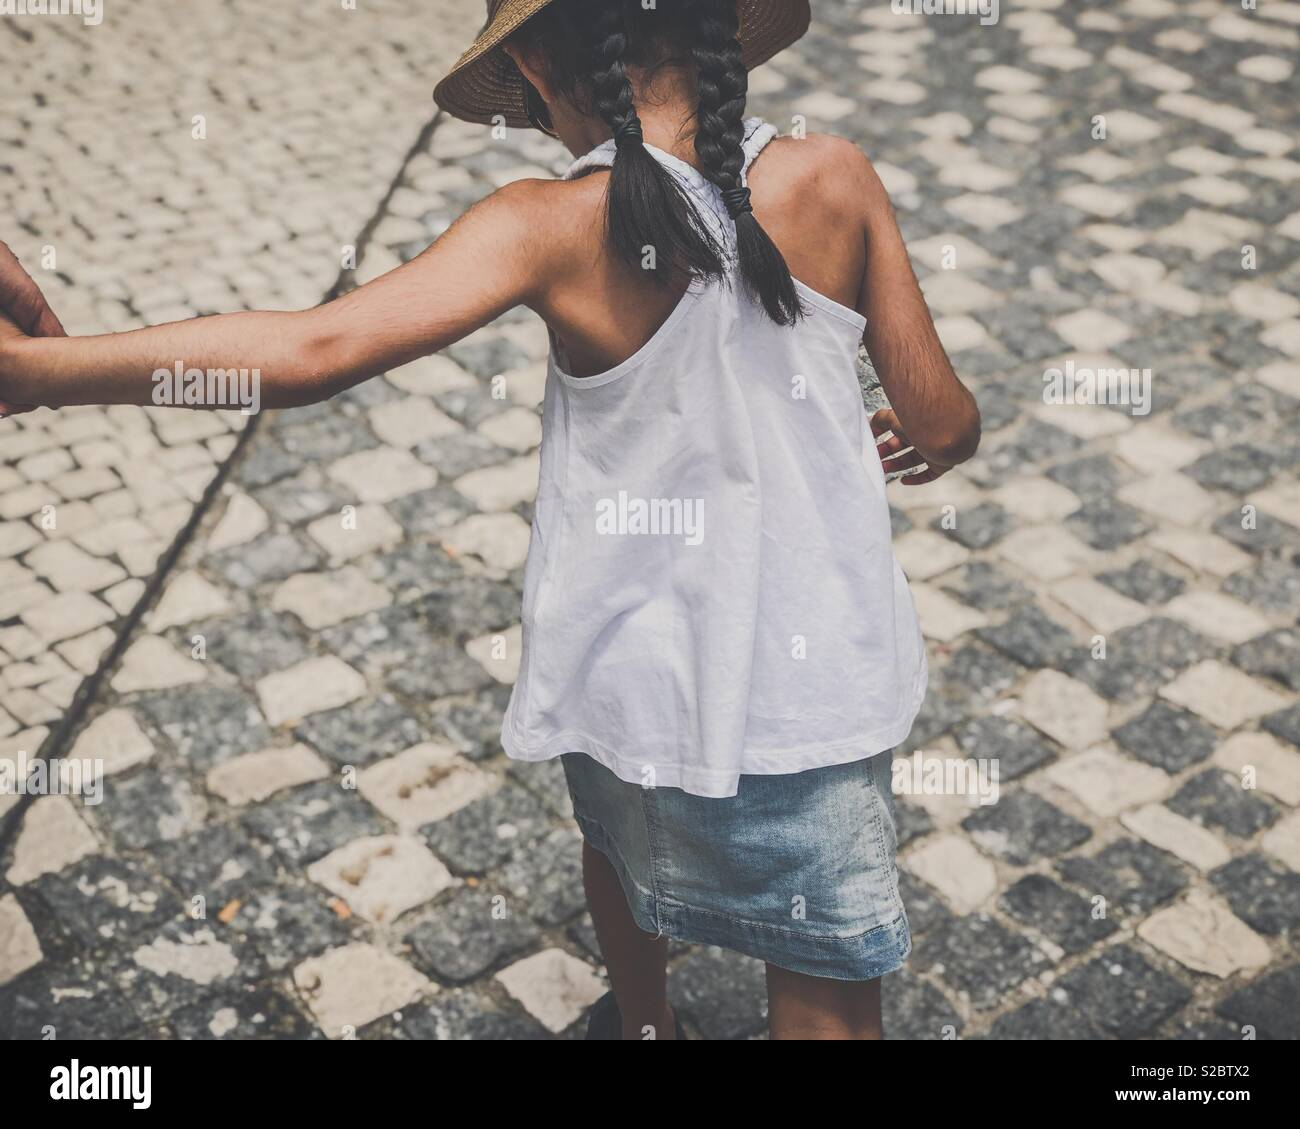 Girl with braided hair and hat, walking on a tiled stone path, holding adult's hand. - Stock Image